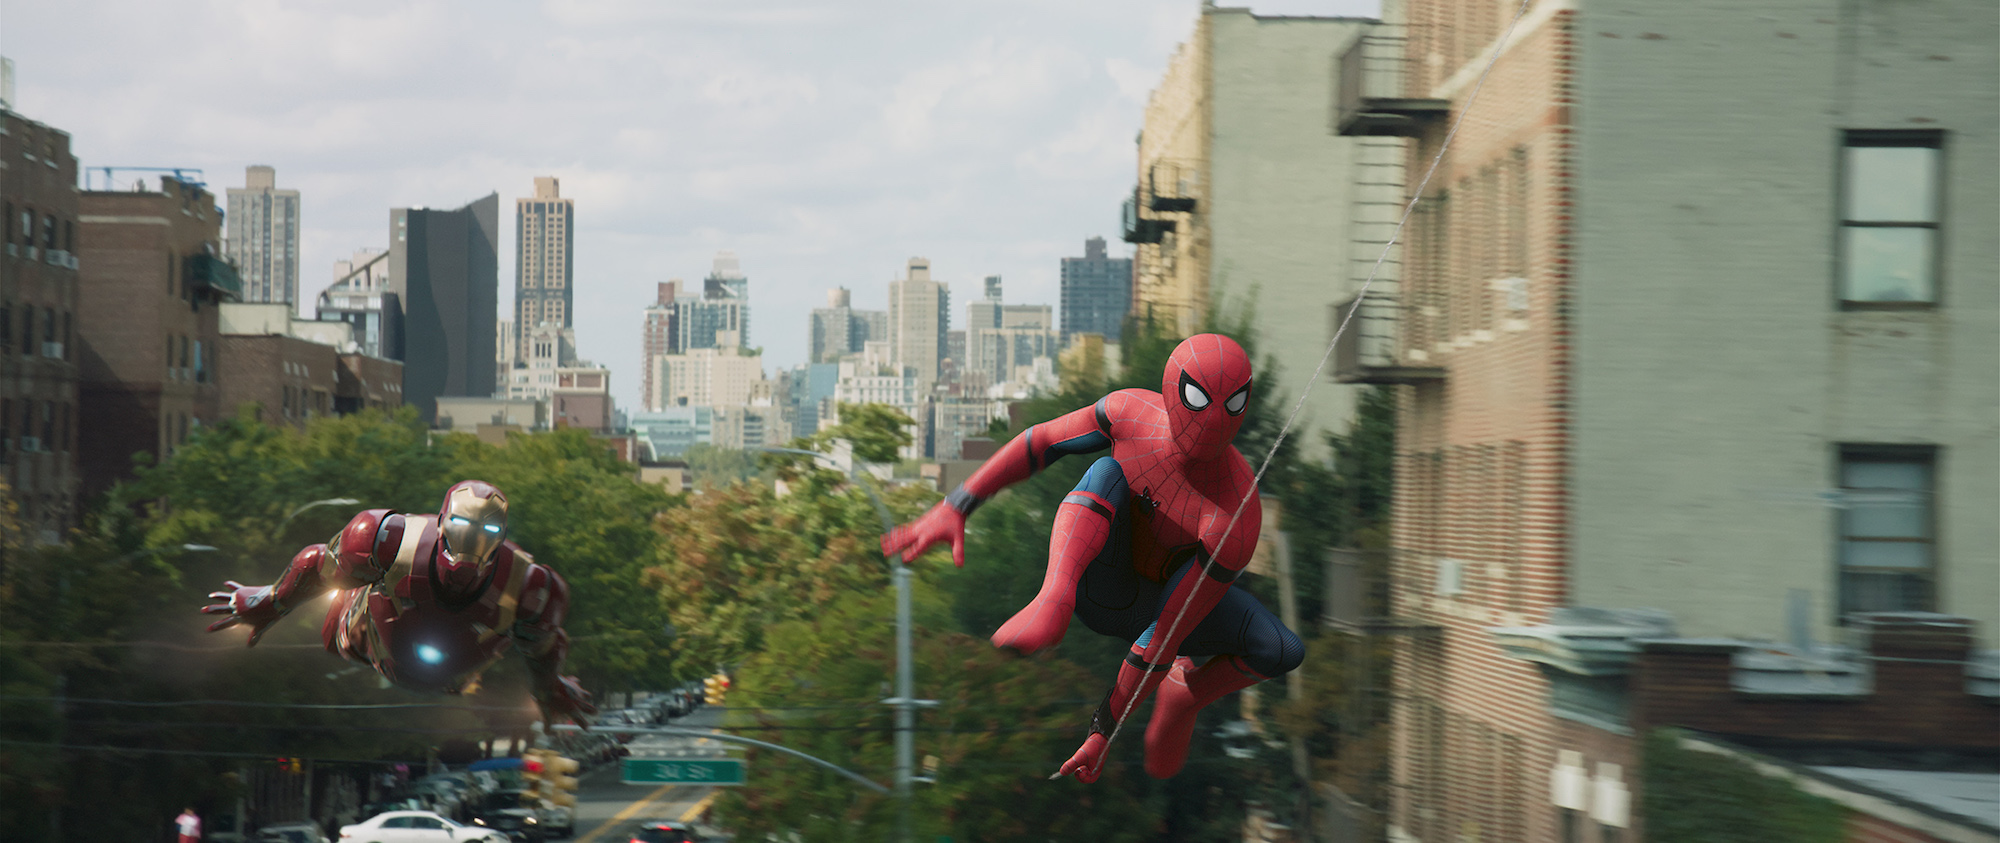 "Spider-Man (Tom Holland) and Iron Man (Robert Downey Jr) in ""Spider-Man: Homecoming"". (Sony Pictures Releasing)"